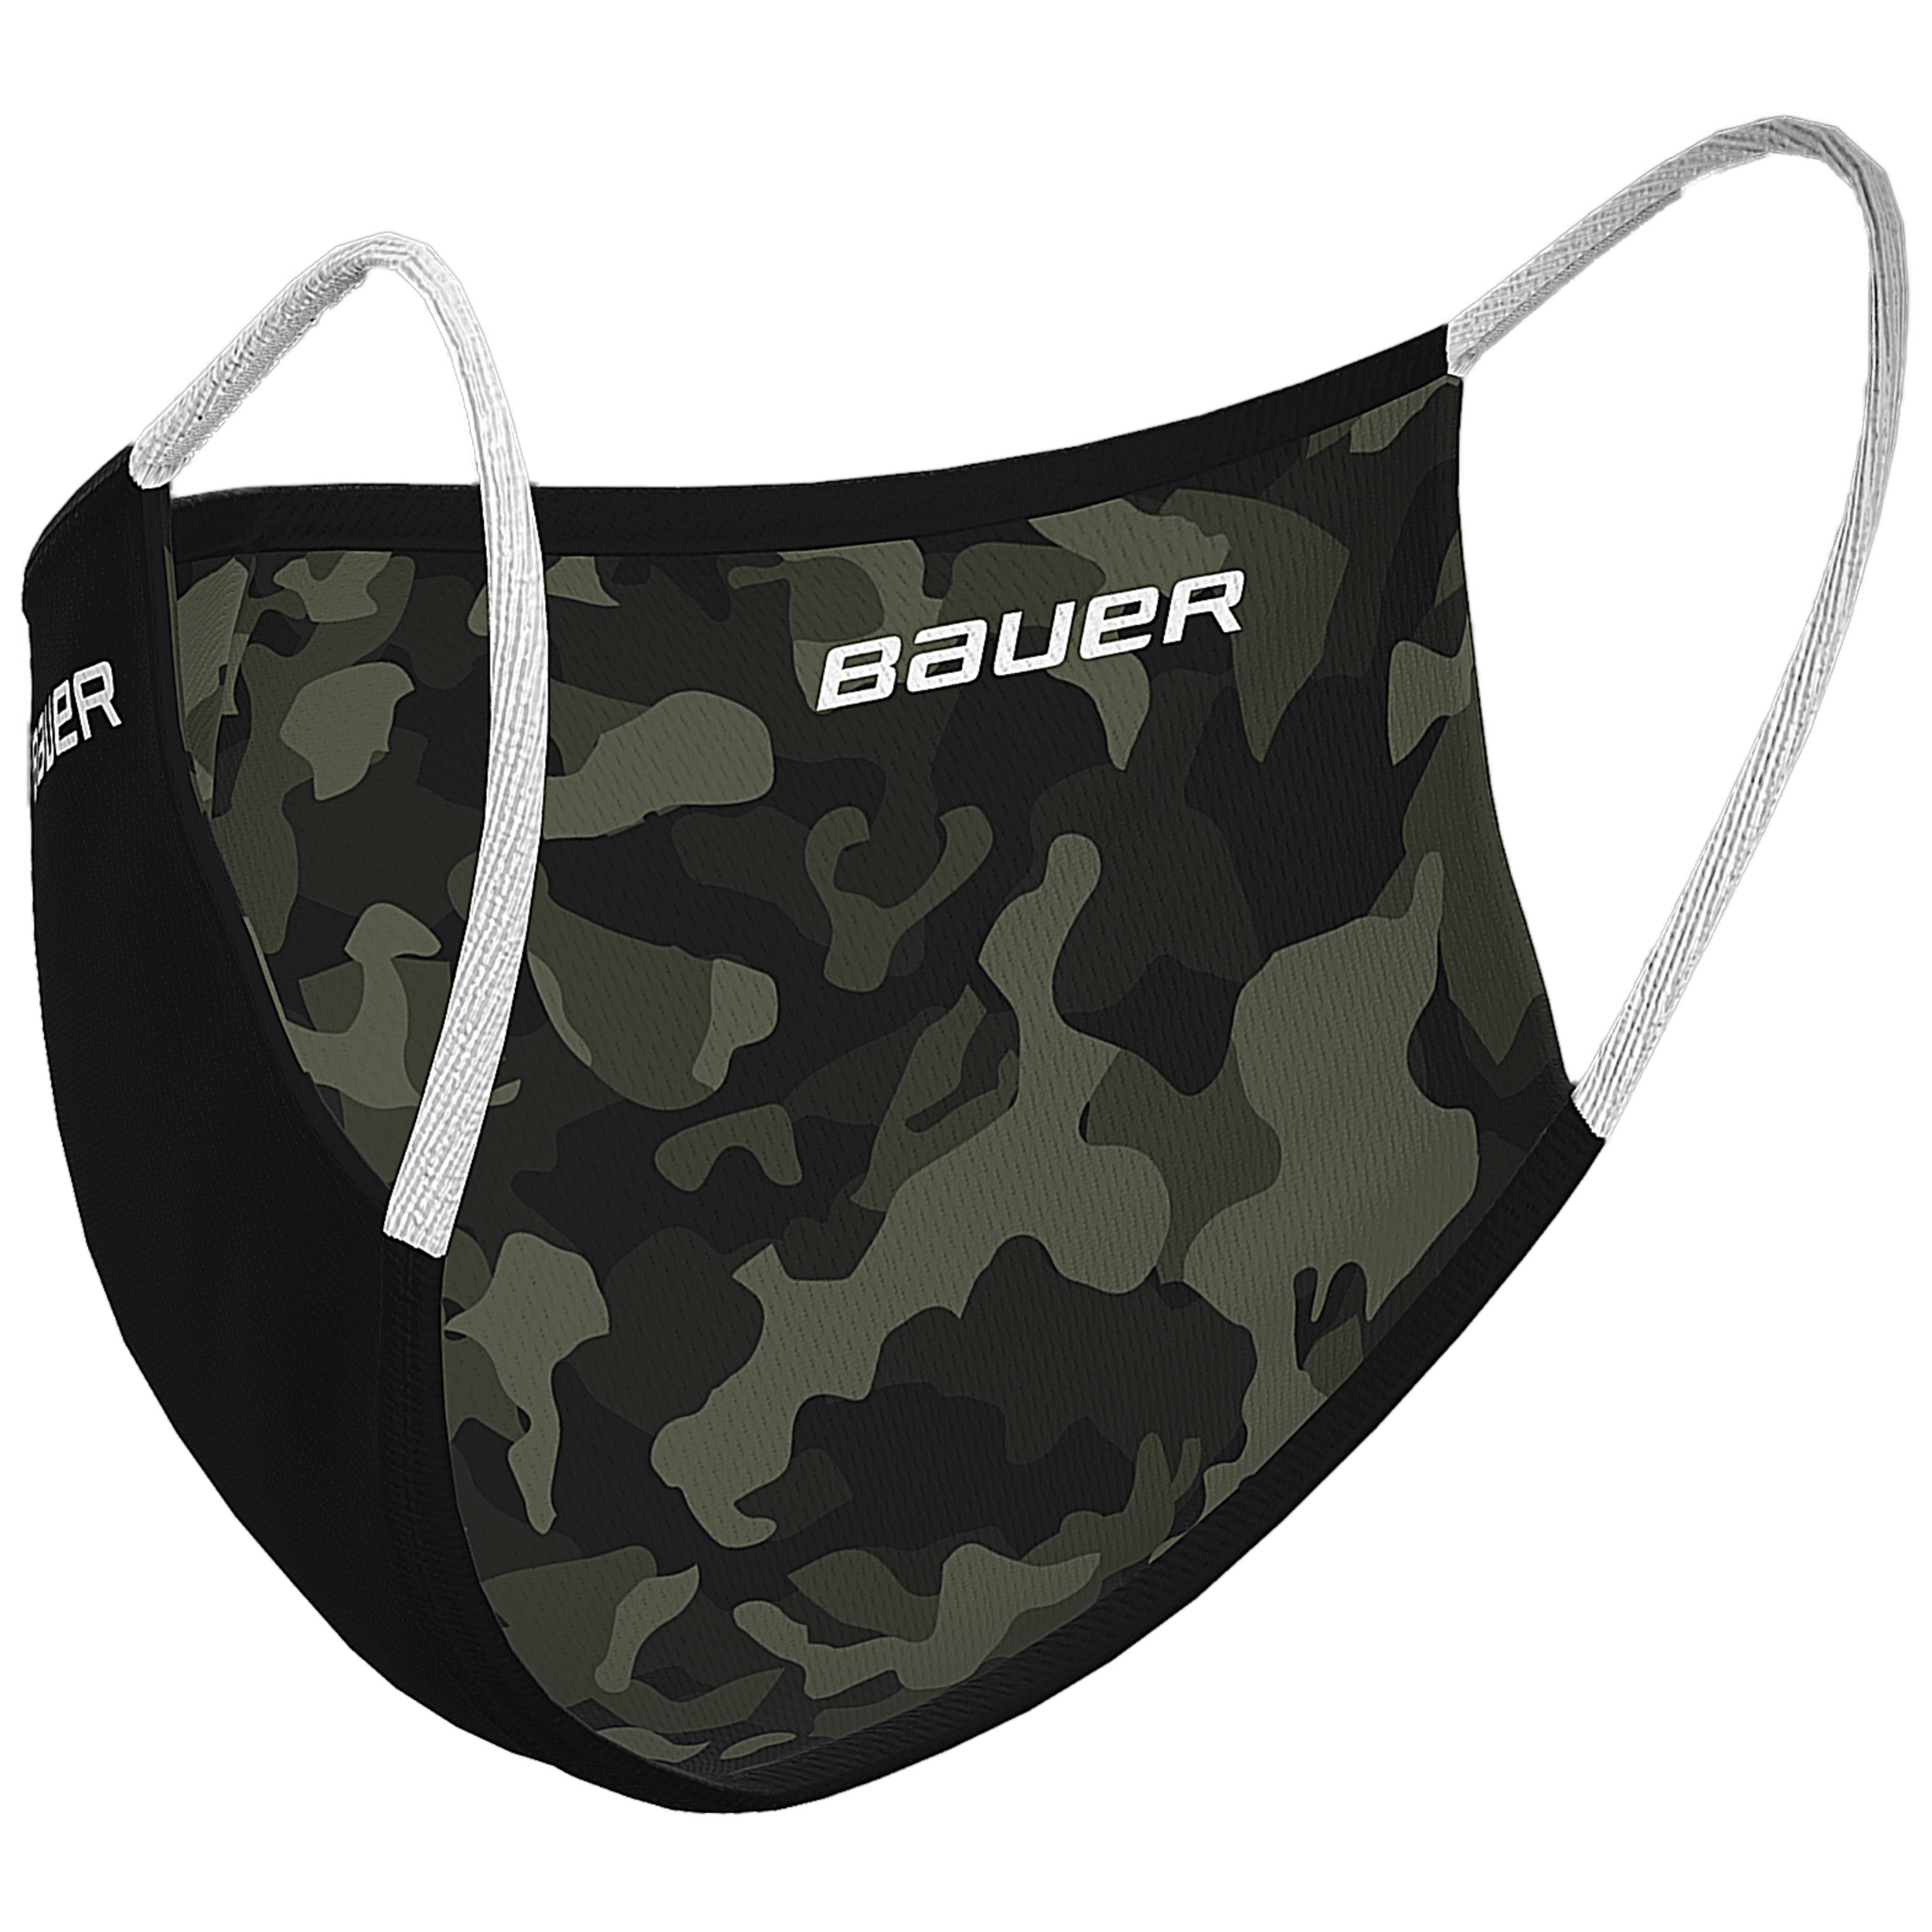 Bauer Reversible Fabric Face Mask Black/Camo,Black/Camo,moyen